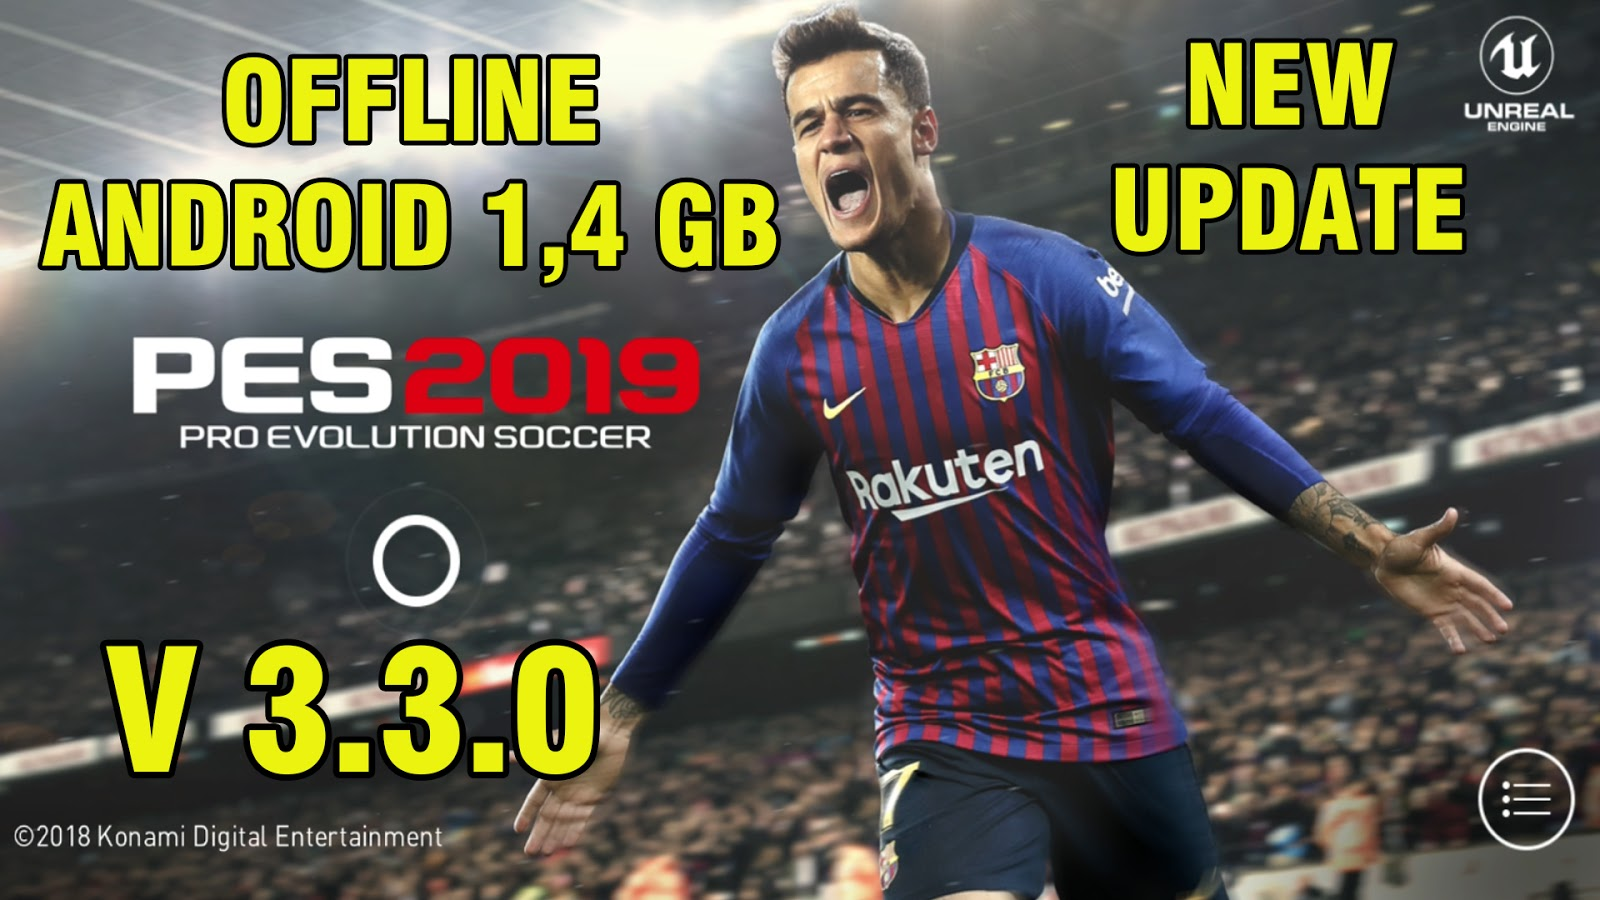 PES 2019 Mobile V3.3.0 Android Offline New Kits Update Android Best Graphics